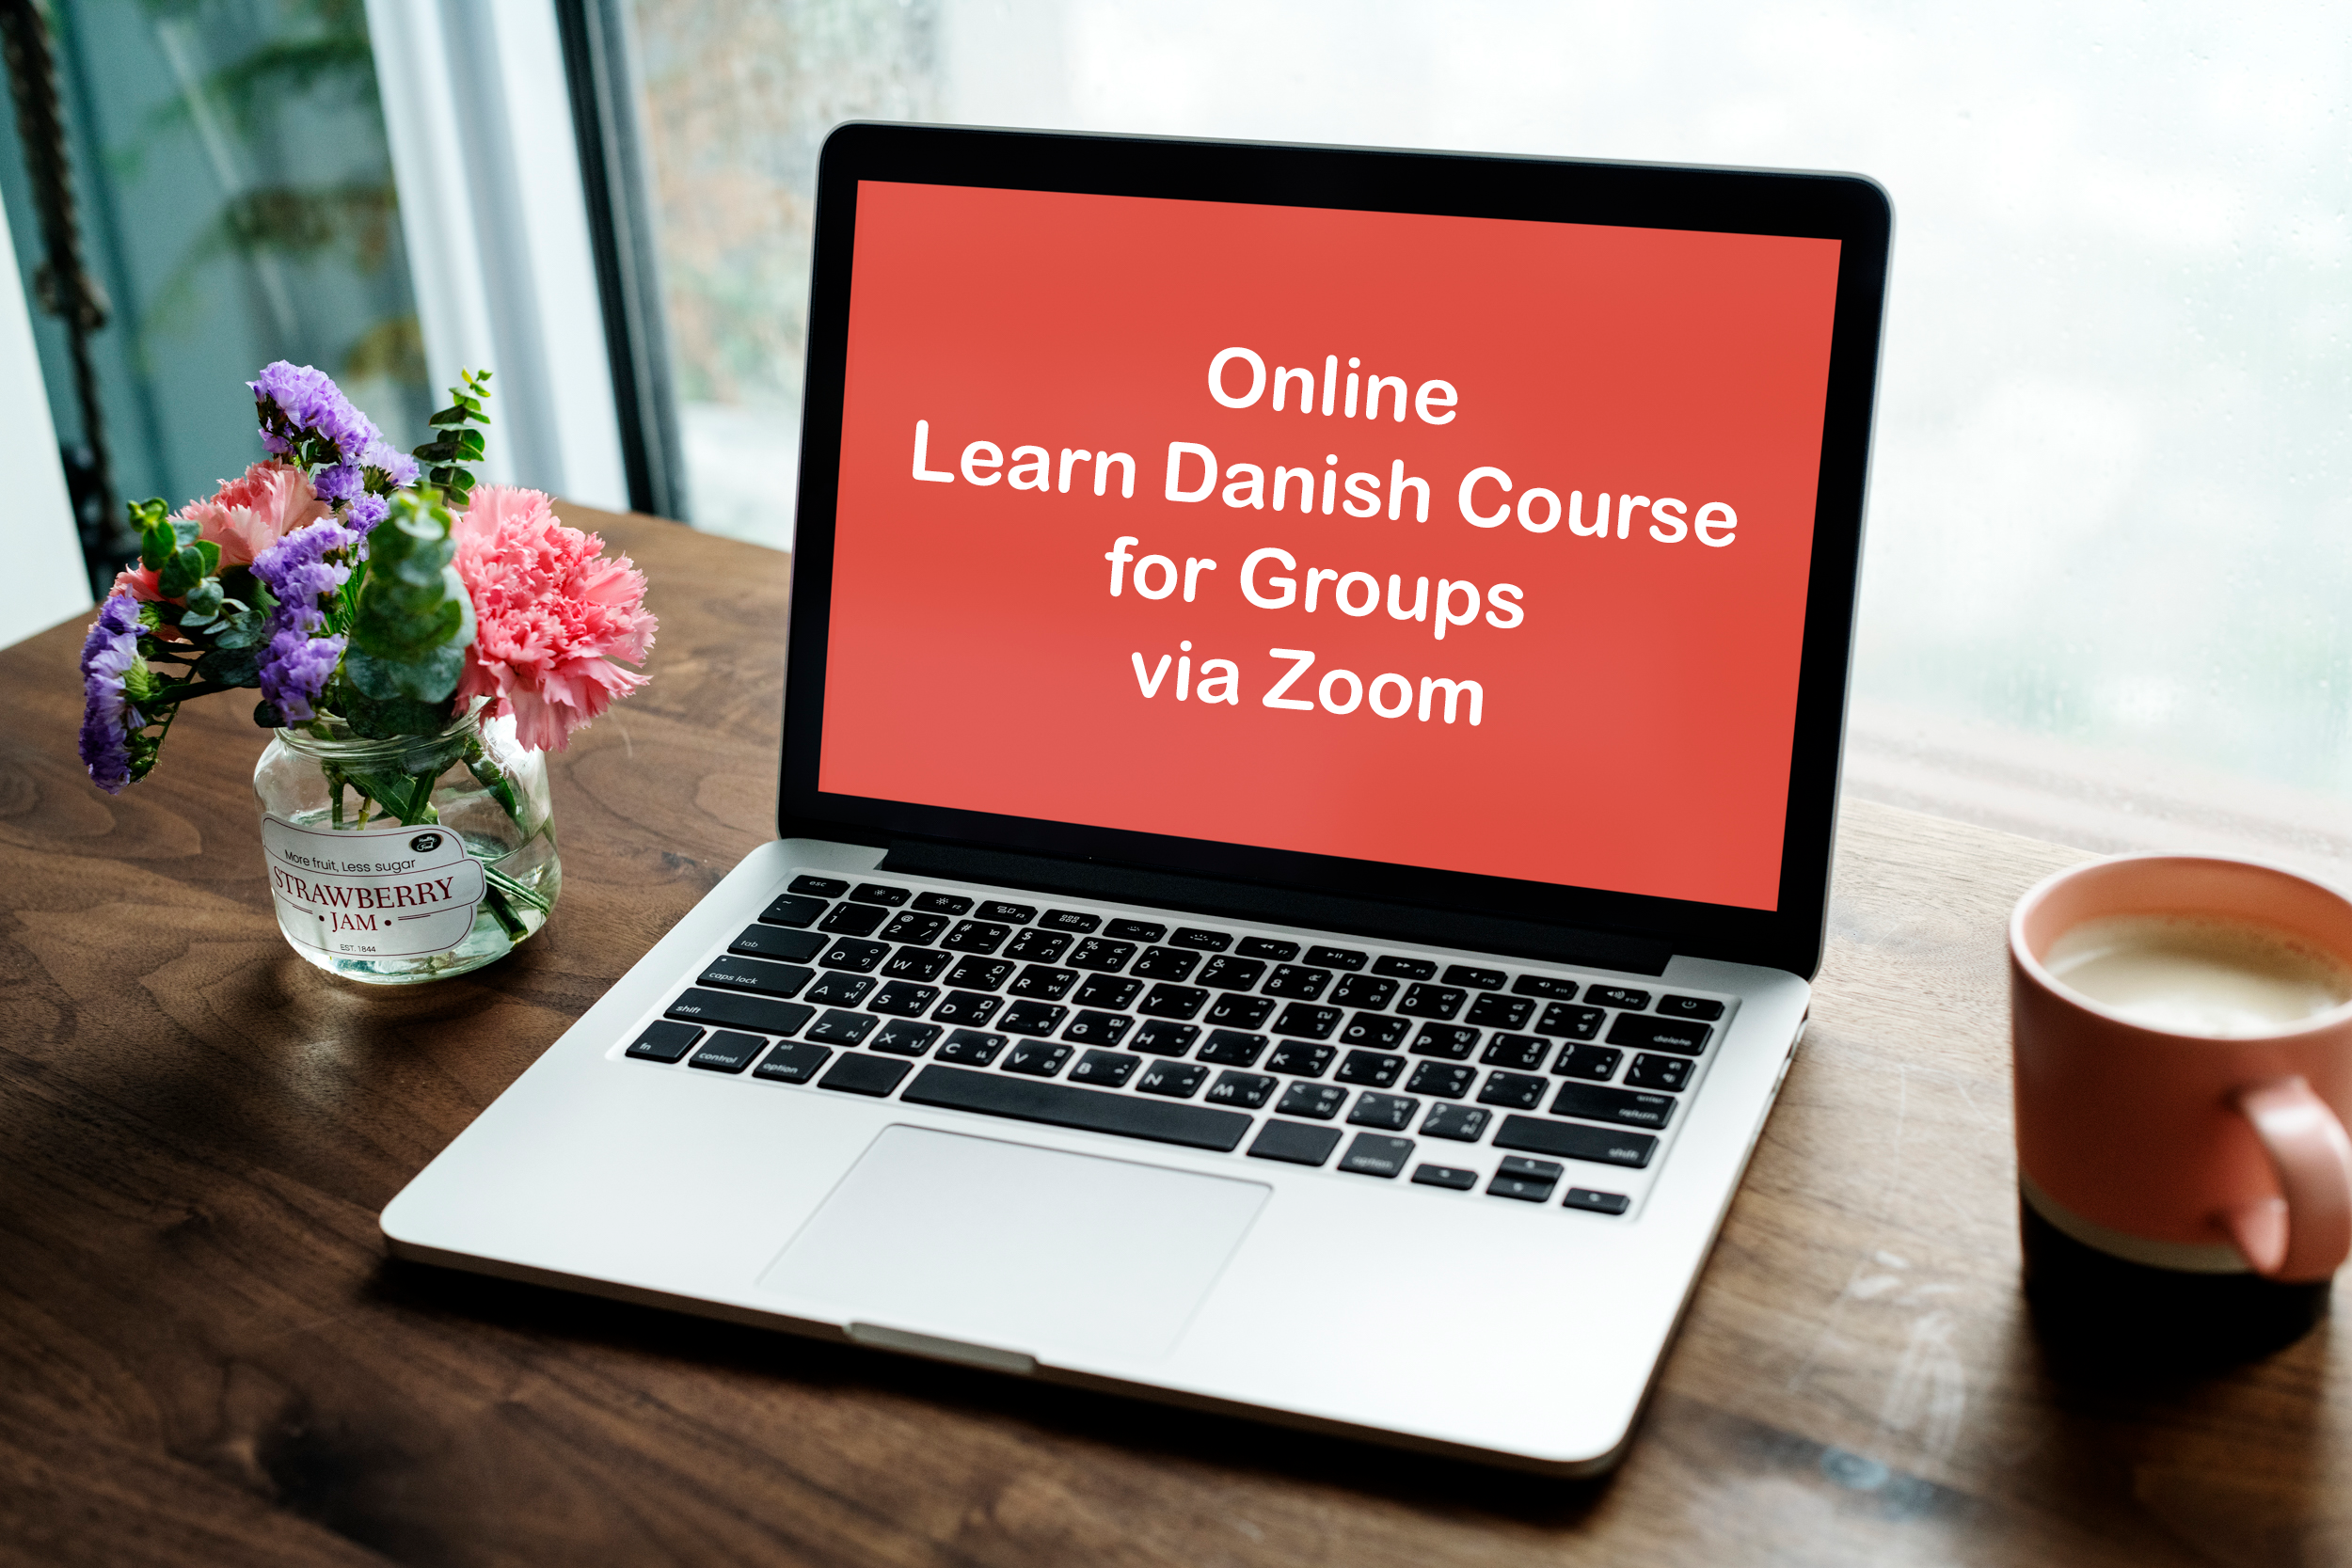 Online Danish Langauge Course for Groups